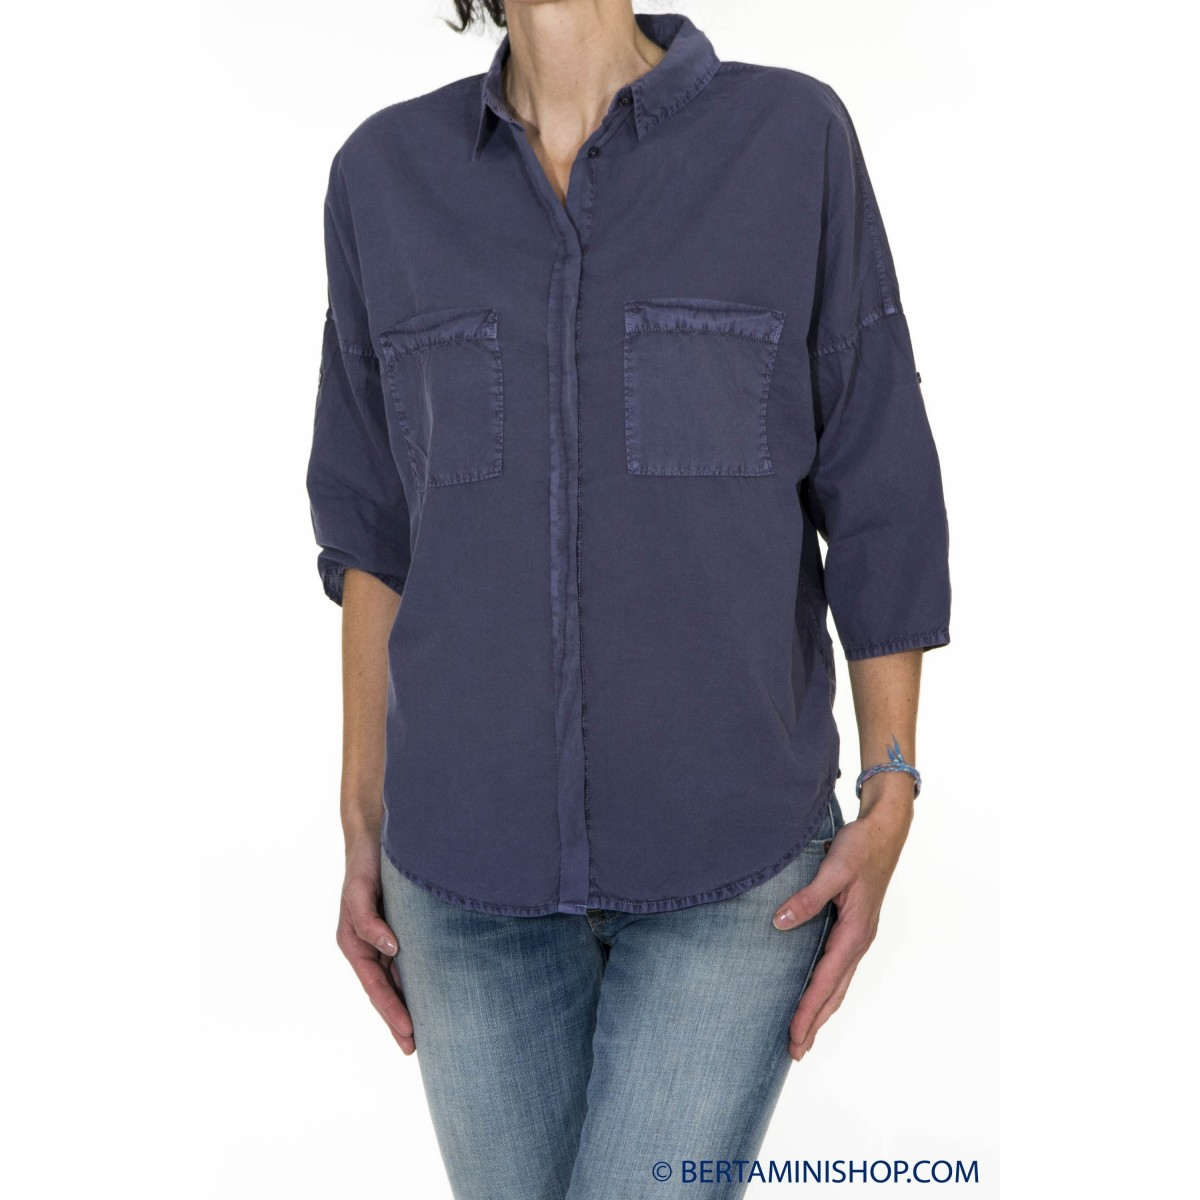 Shirt Better Rich Woman - F42 Over fit 3810 - Blu